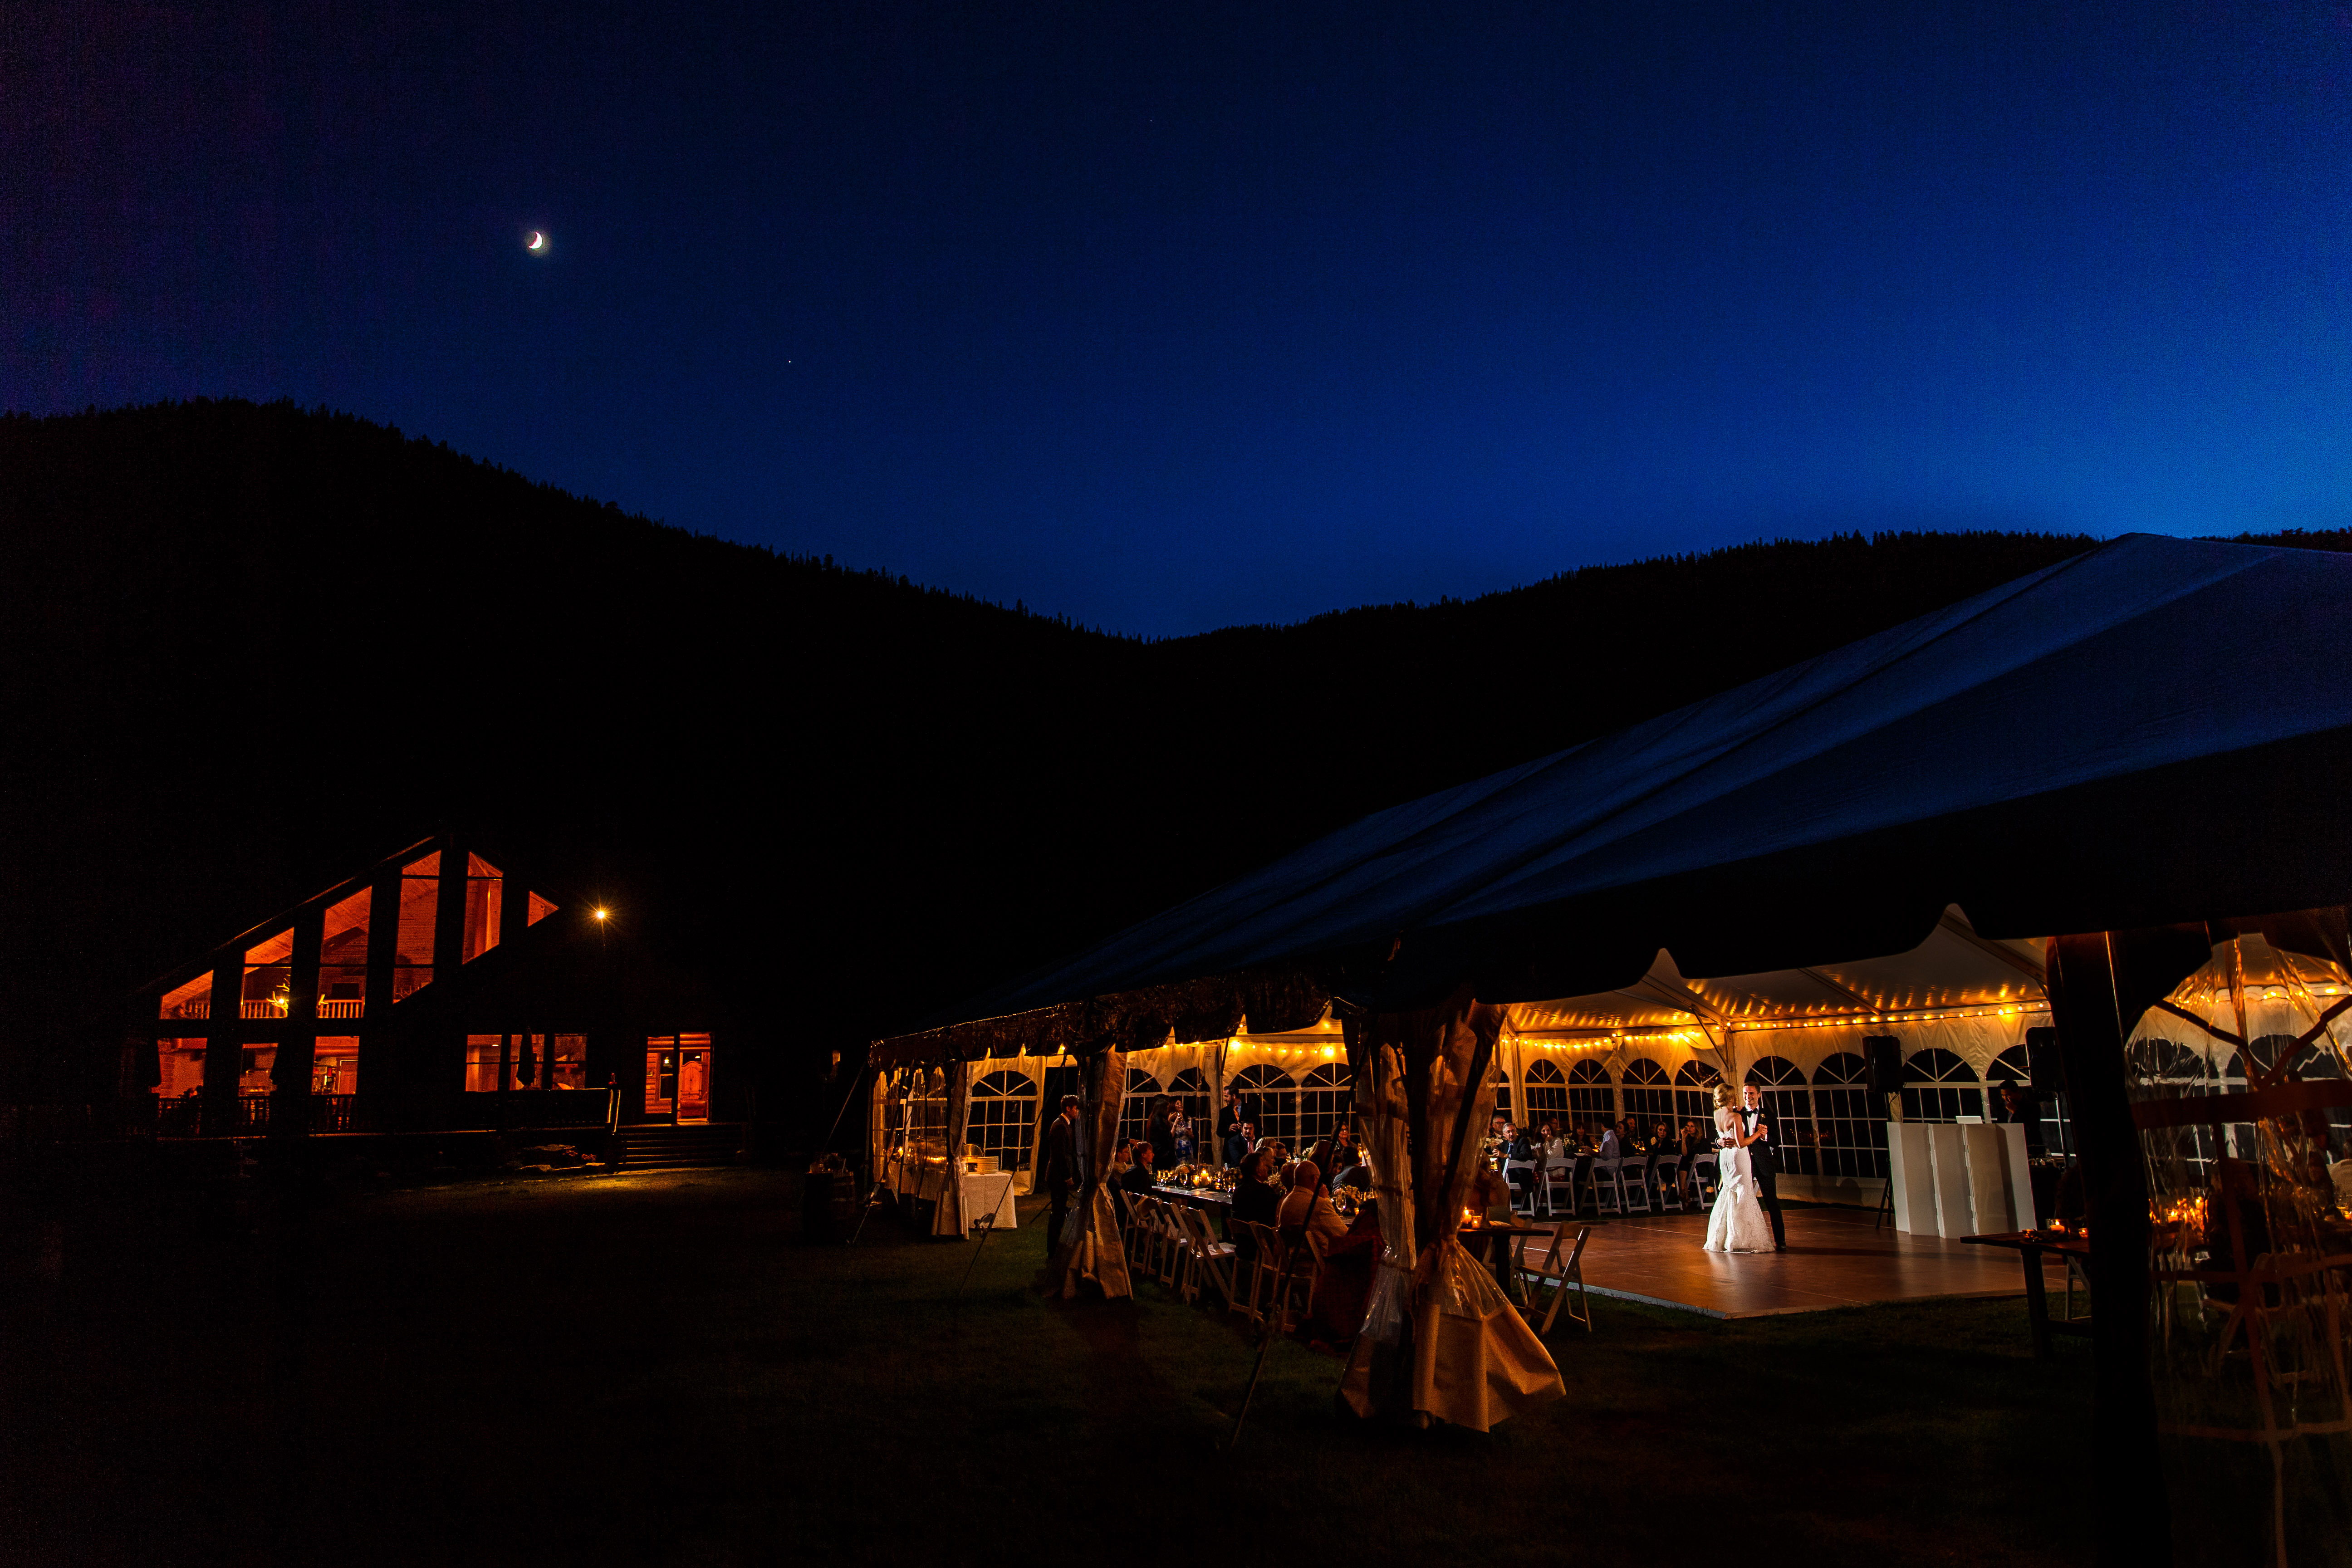 Camp Hale Wedding Reception in Tent